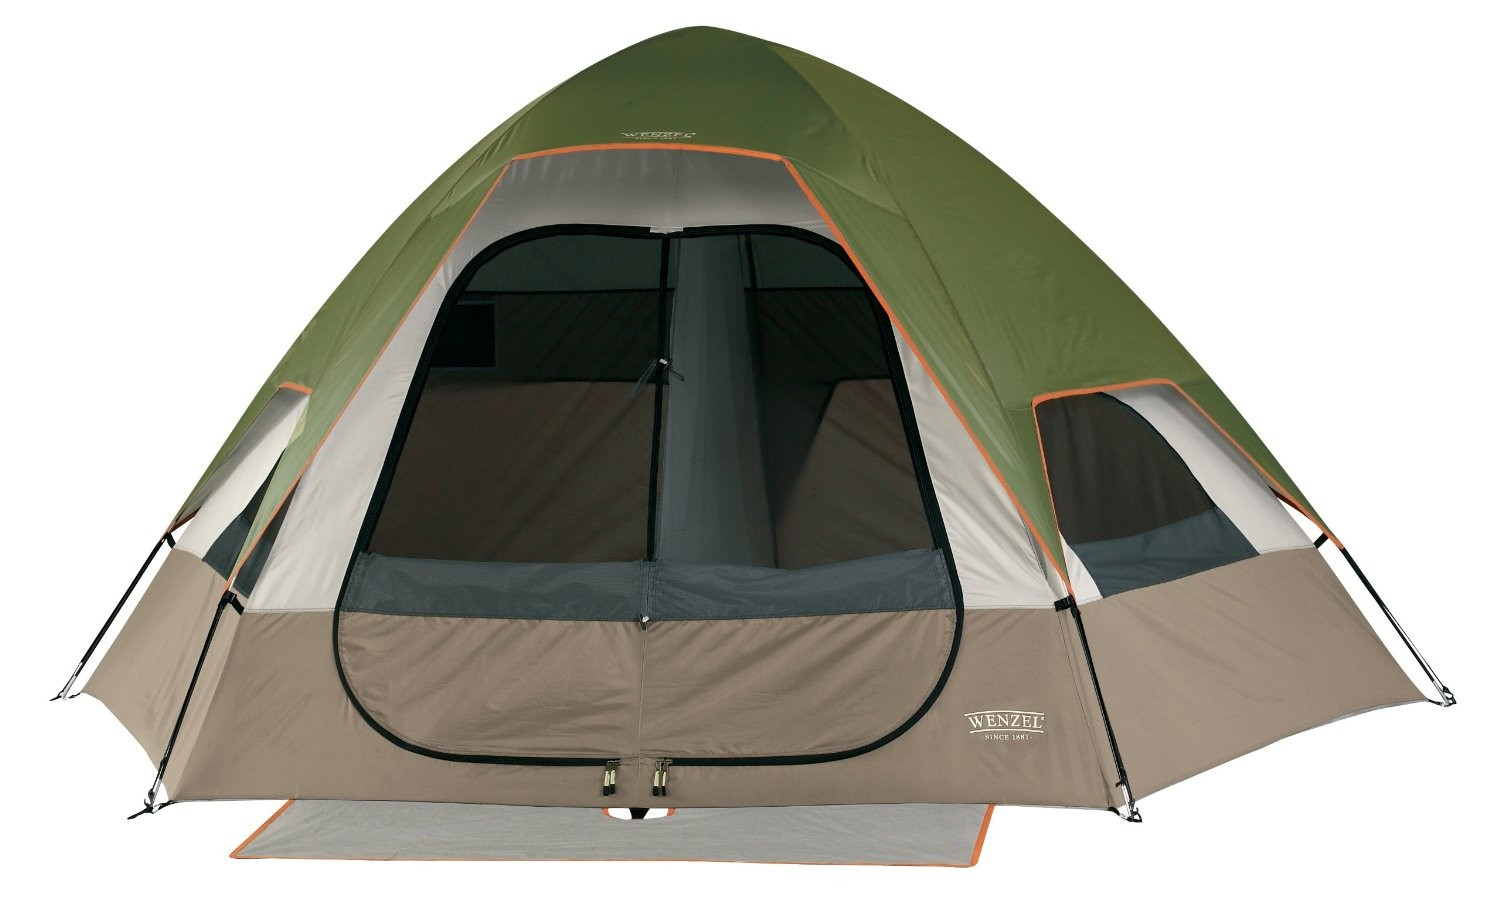 Wenzel Big Bend 12-by-10 Foot 5-Person 2-Room Family Dome Tent  sc 1 st  C&ingMaxx.com & Big Bend 12-by-10 Foot 5-Person 2-Room Family Dome Tent